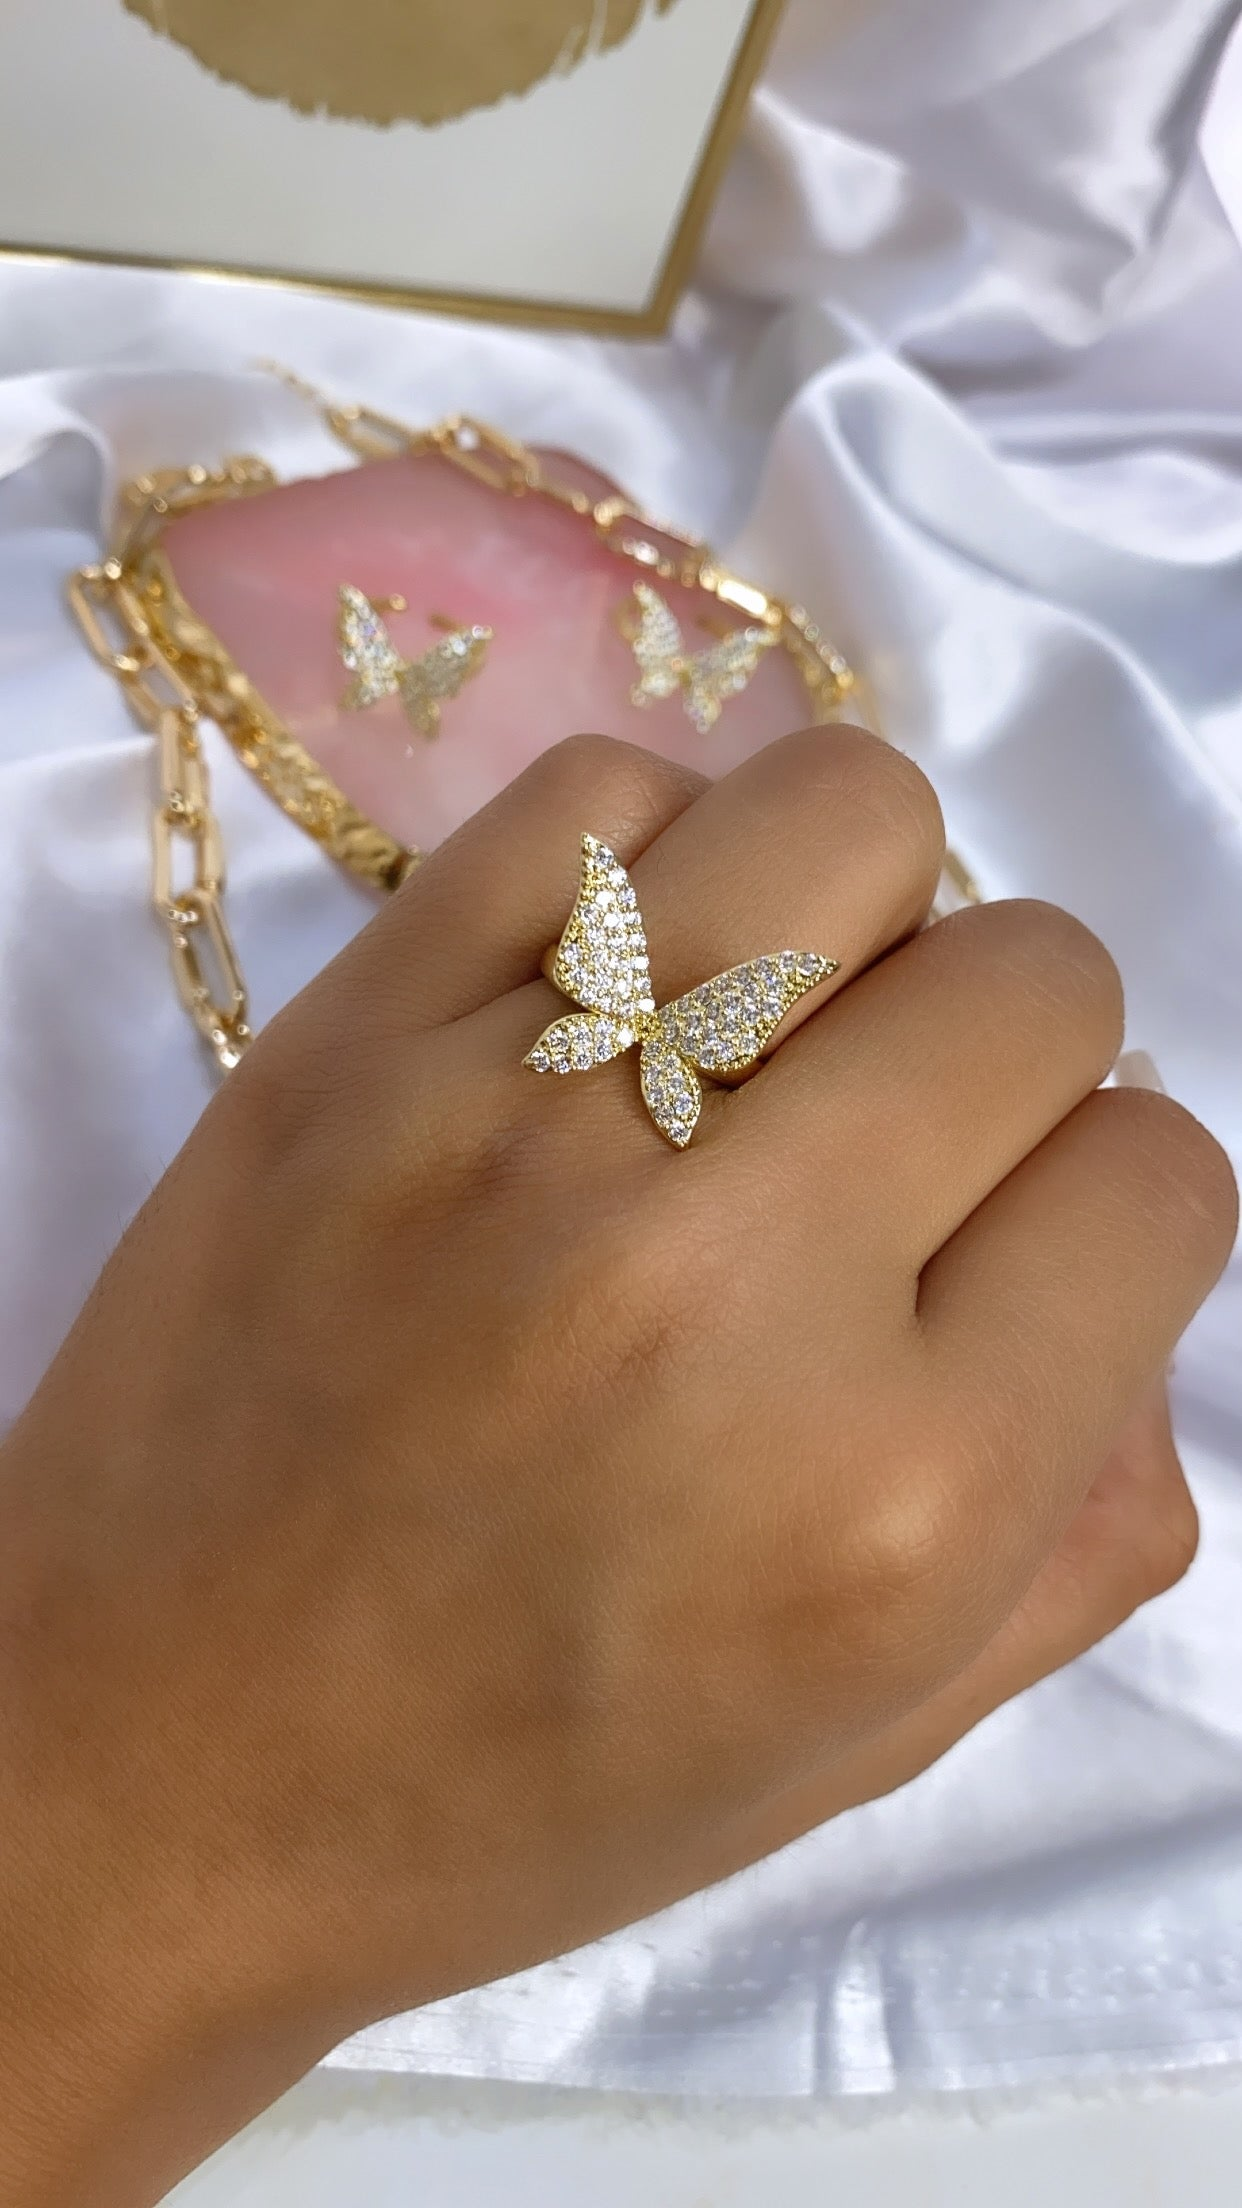 Butterfly ring 4